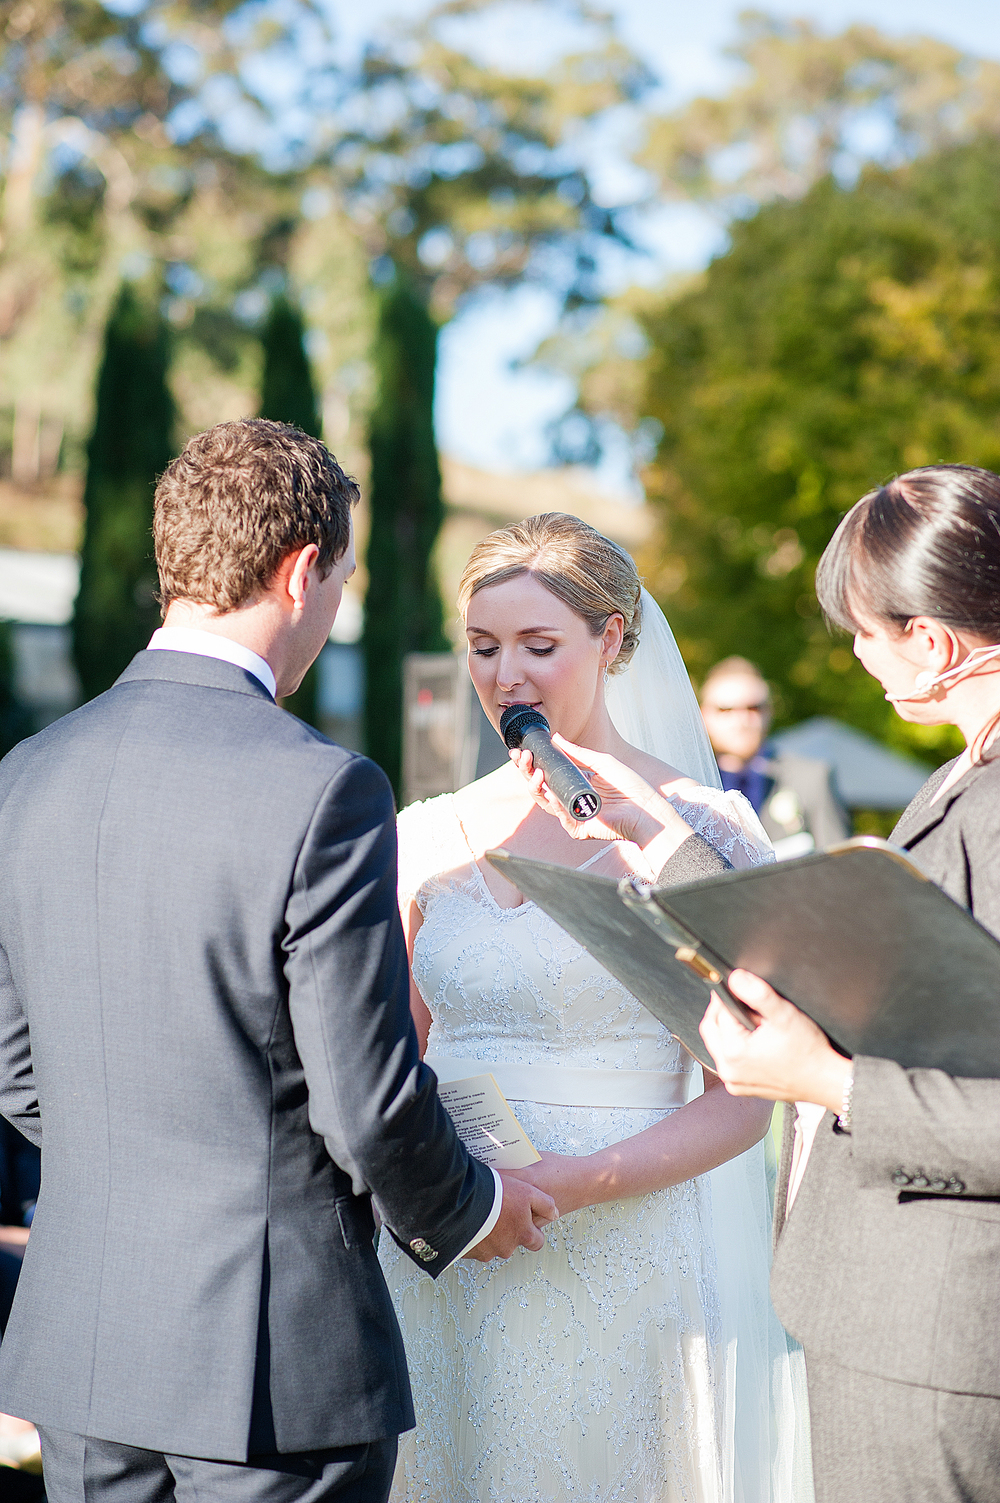 Elyce saying her vows. Photo by Emma Sharkey Photography.